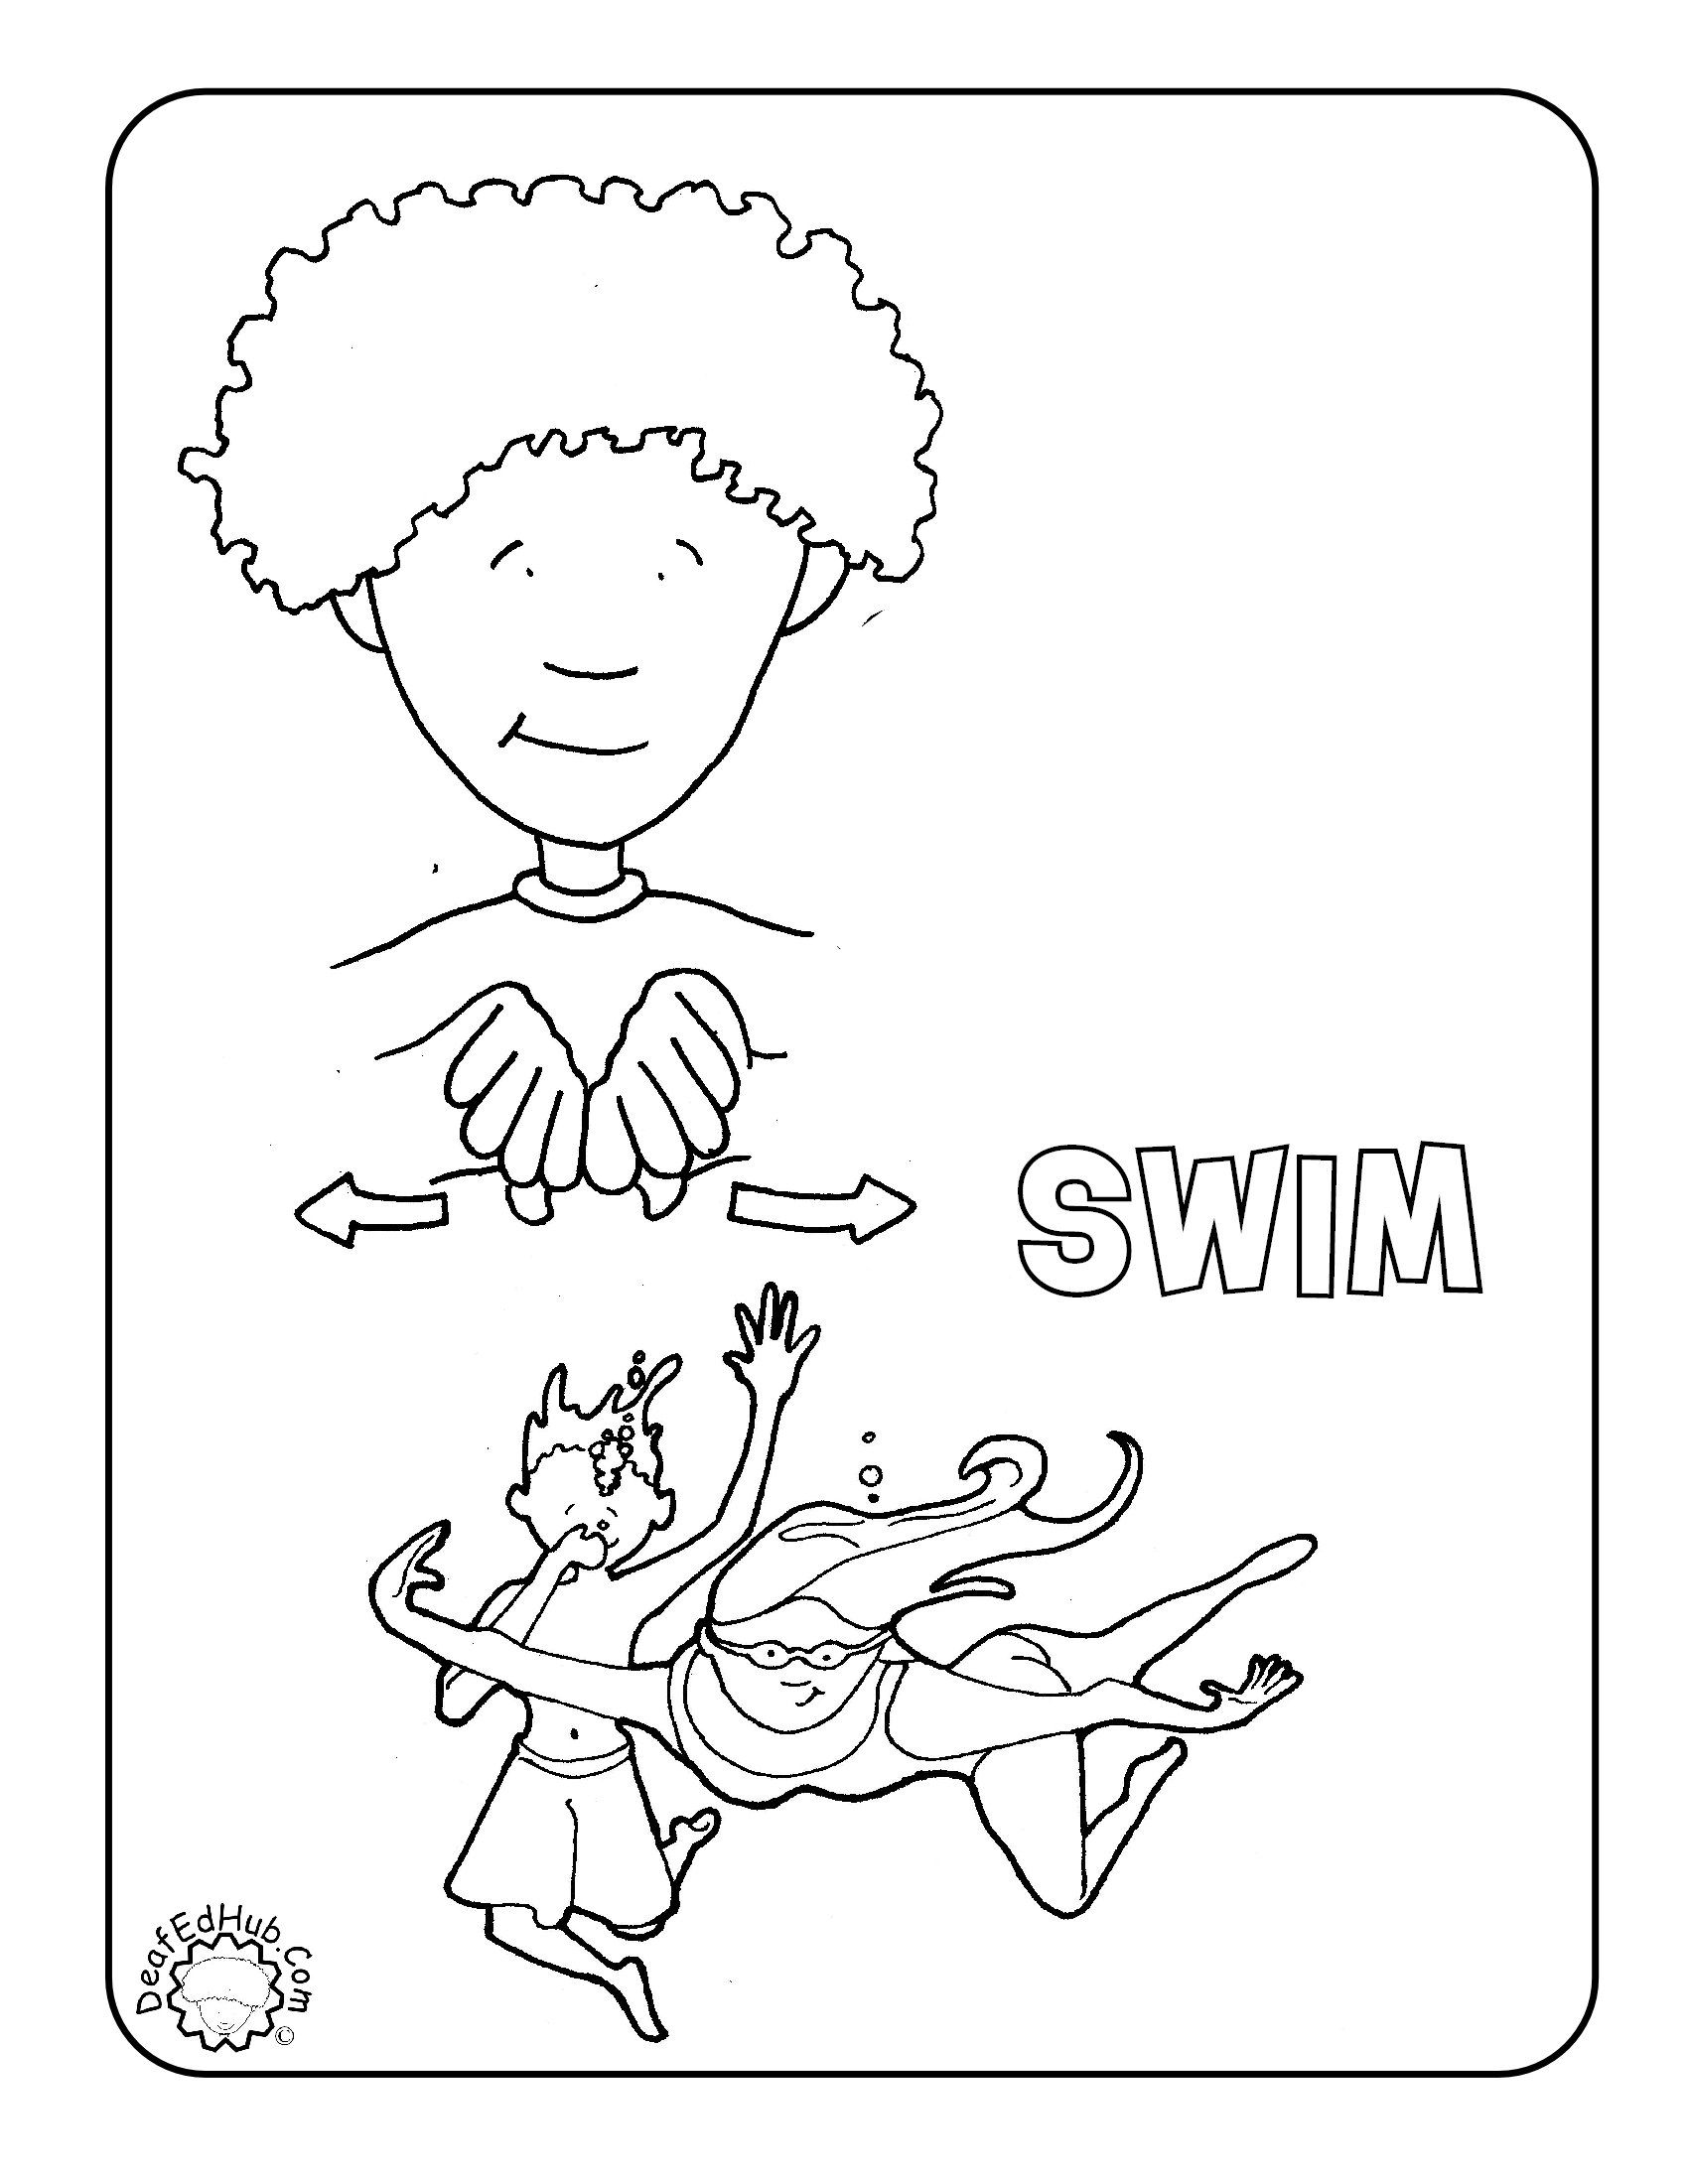 Asl Coloring Page For The Sign Swim Deafedhub